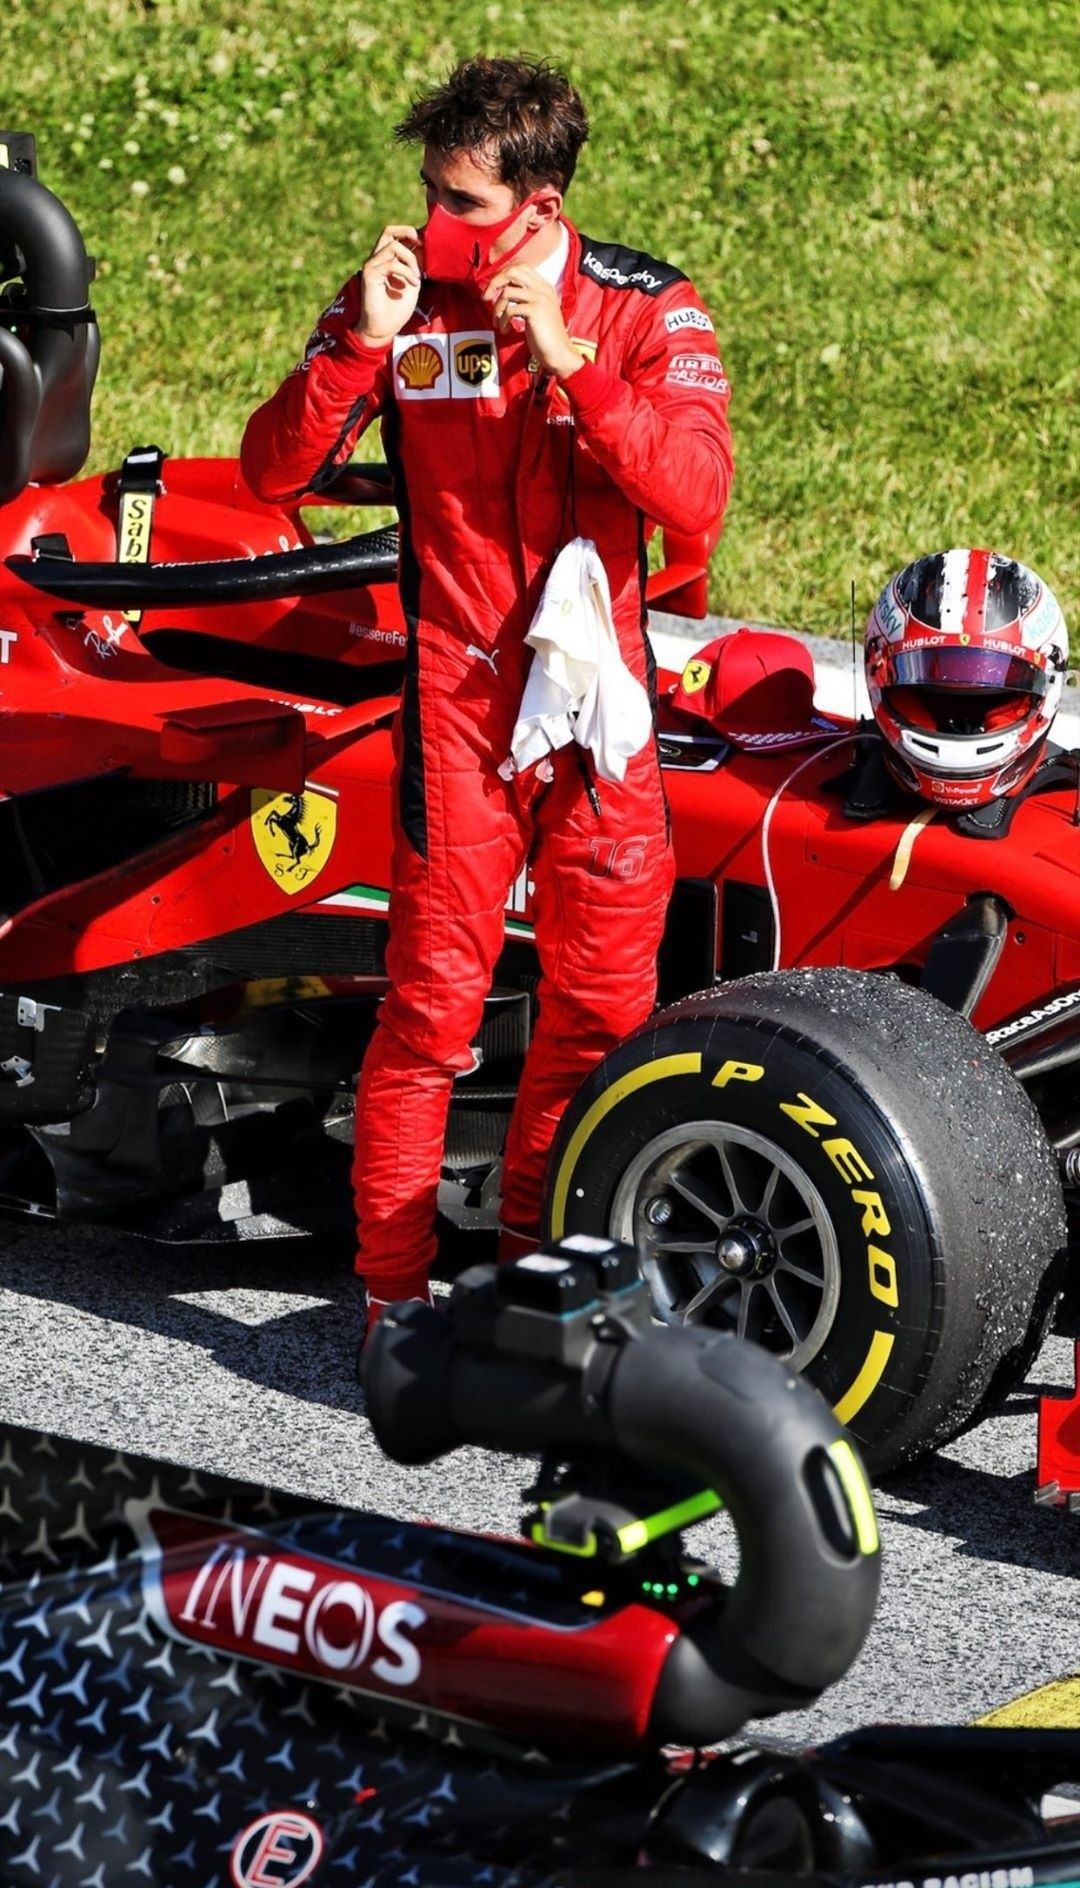 Pin By V S On Charles Leclerc In 2020 Racing Formula One Charles